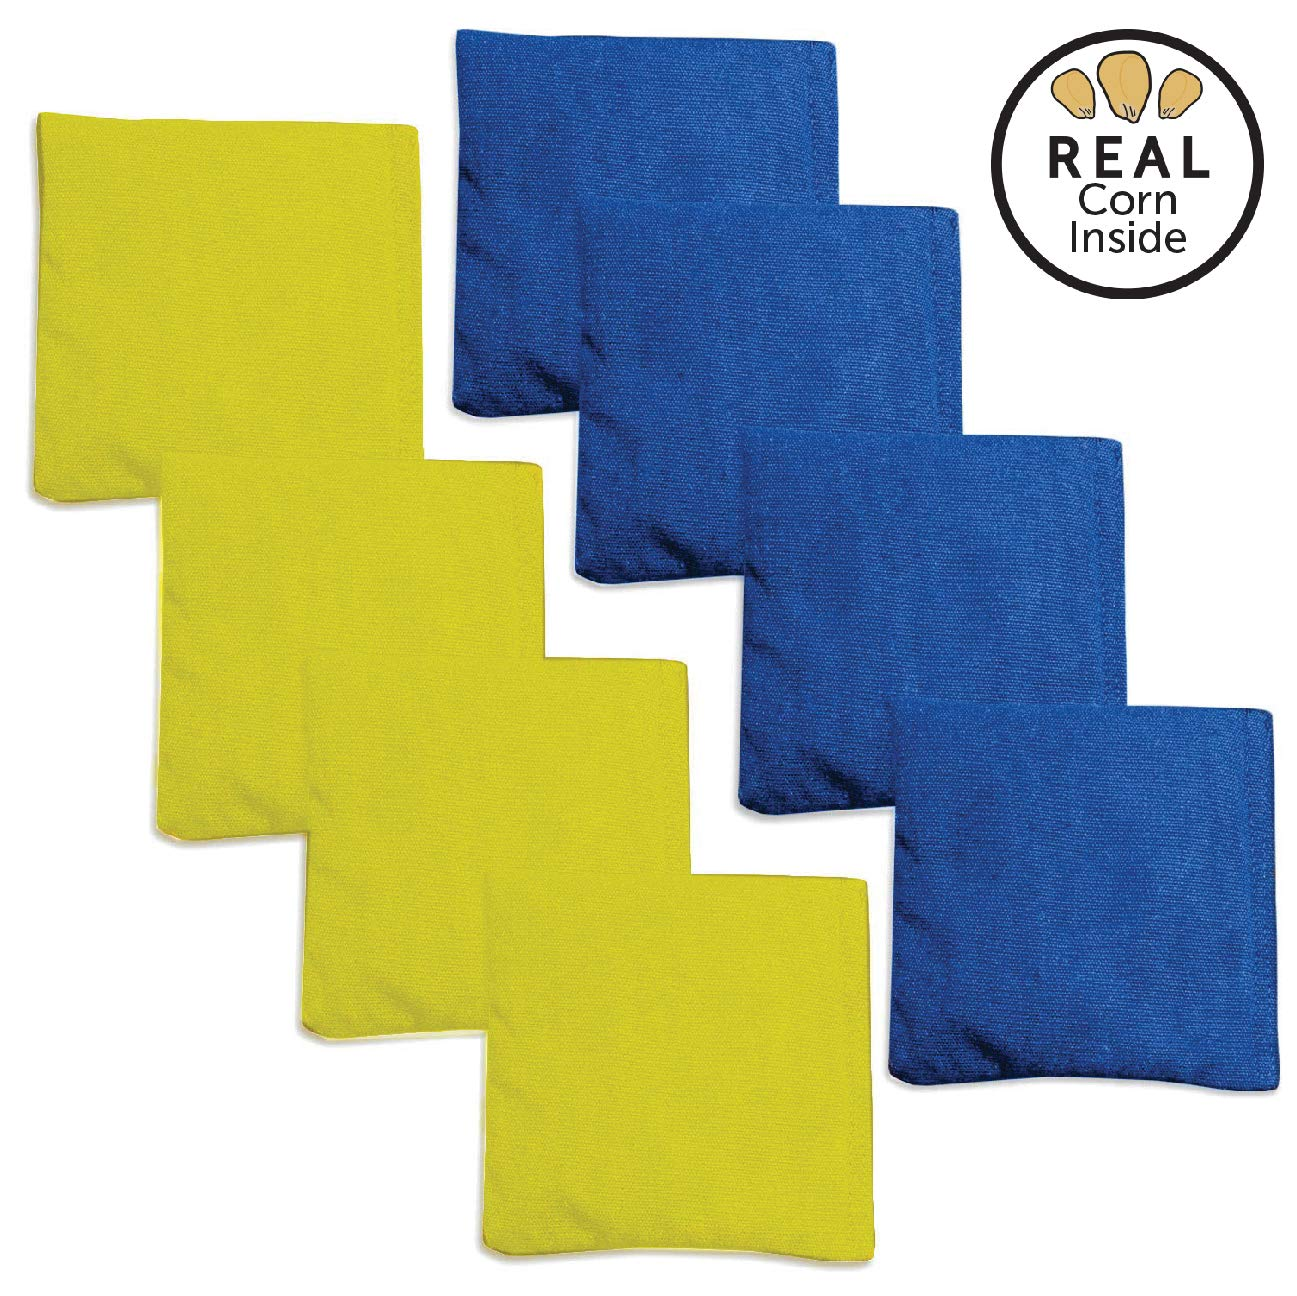 Corn Filled Cornhole Bags - Set of 8 Bean Bags for Corn Hole Game - Regulation Size & Weight - Blue & Yellow